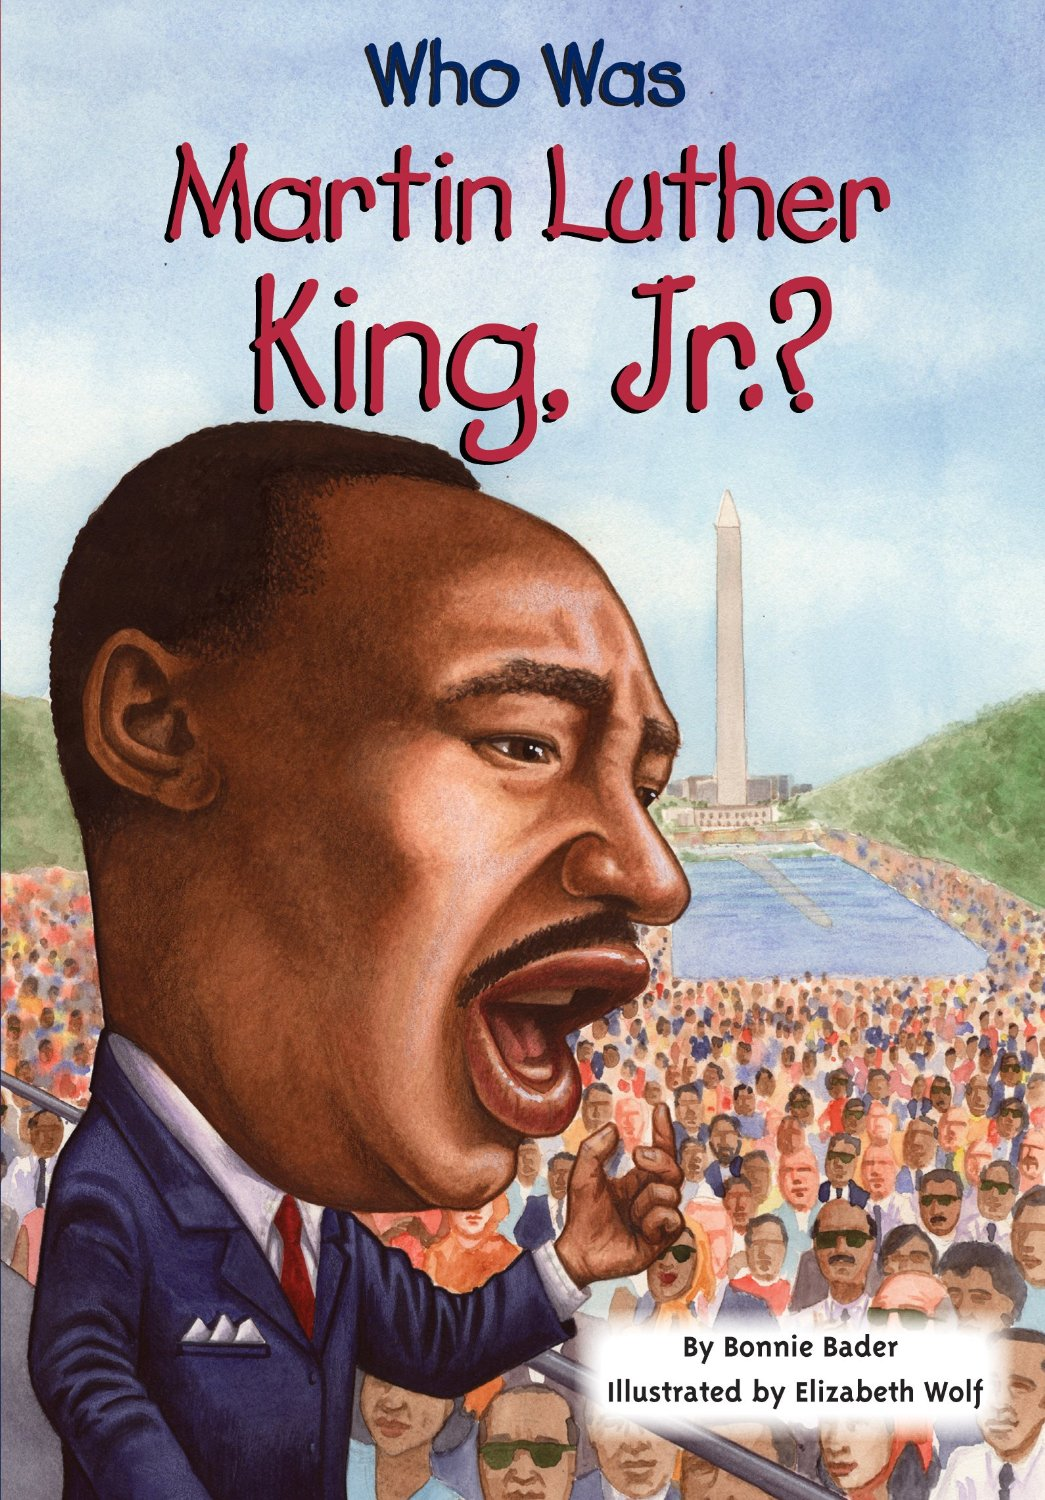 Uncategorized Martin Luther King Jr Cartoon Movie 3 must read childrens books about dr martin luther king jr who was by bonnie bader